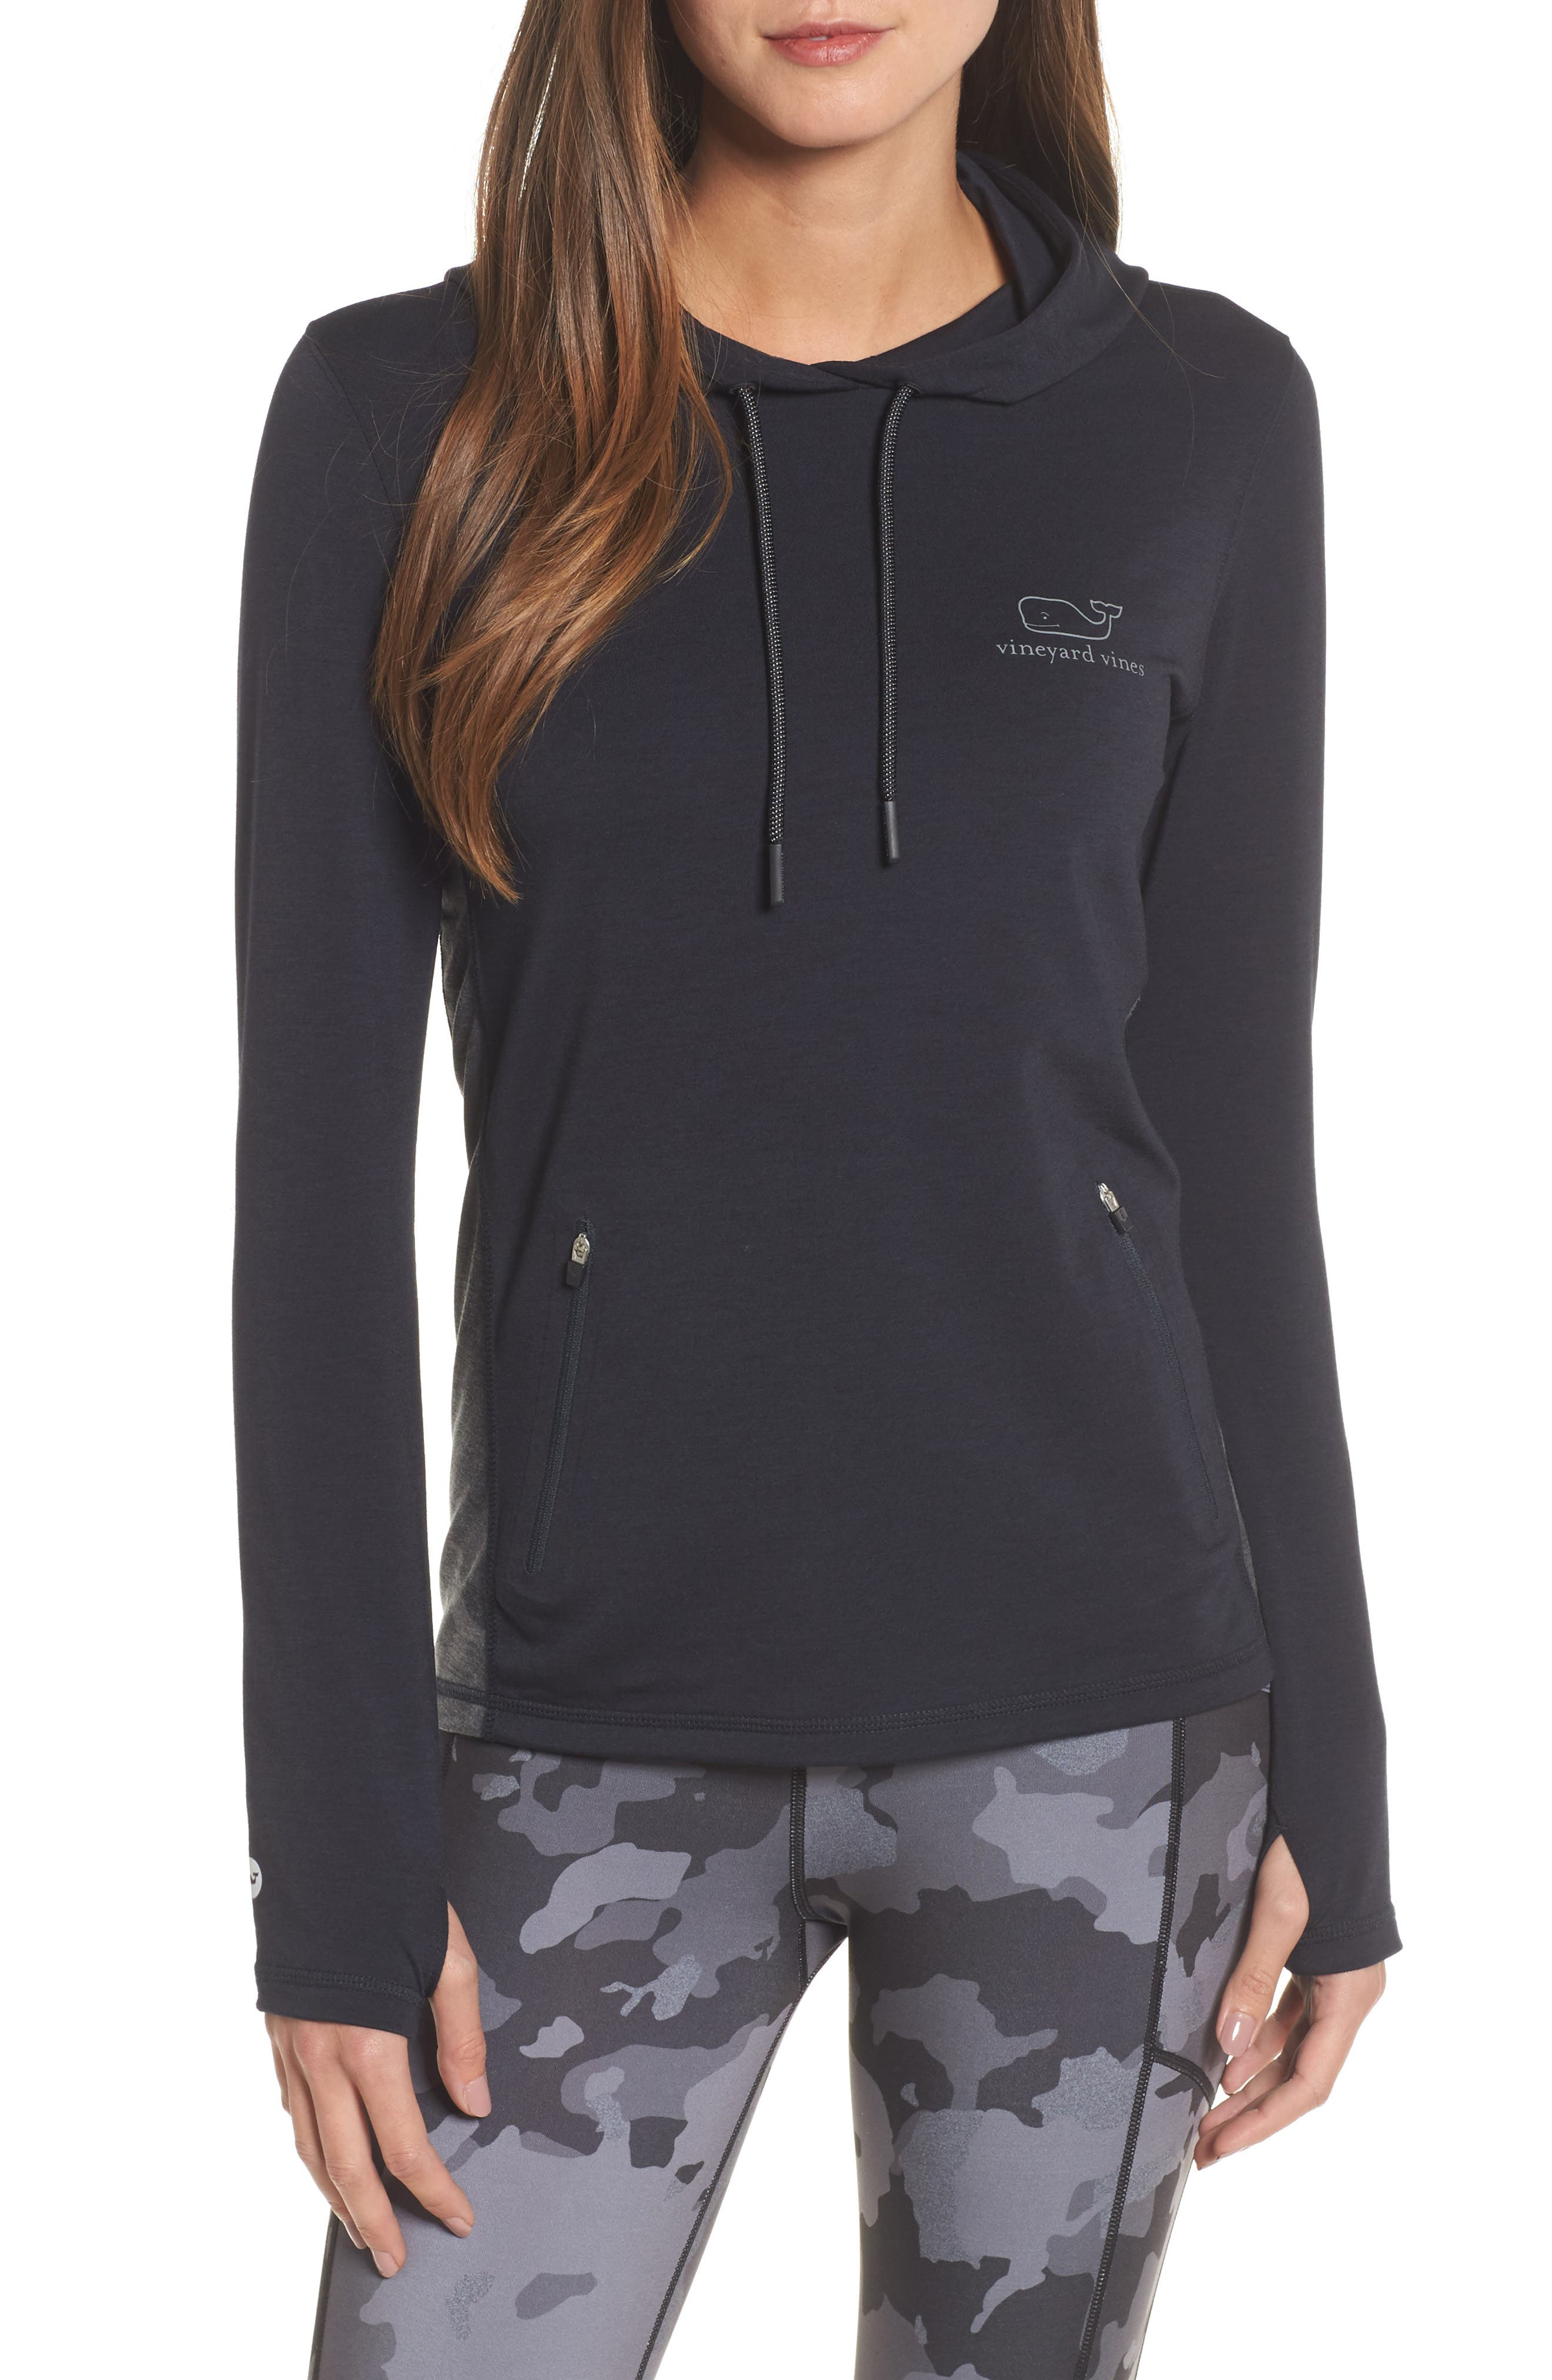 vineyard vines Performance Camo Whale Hoodie